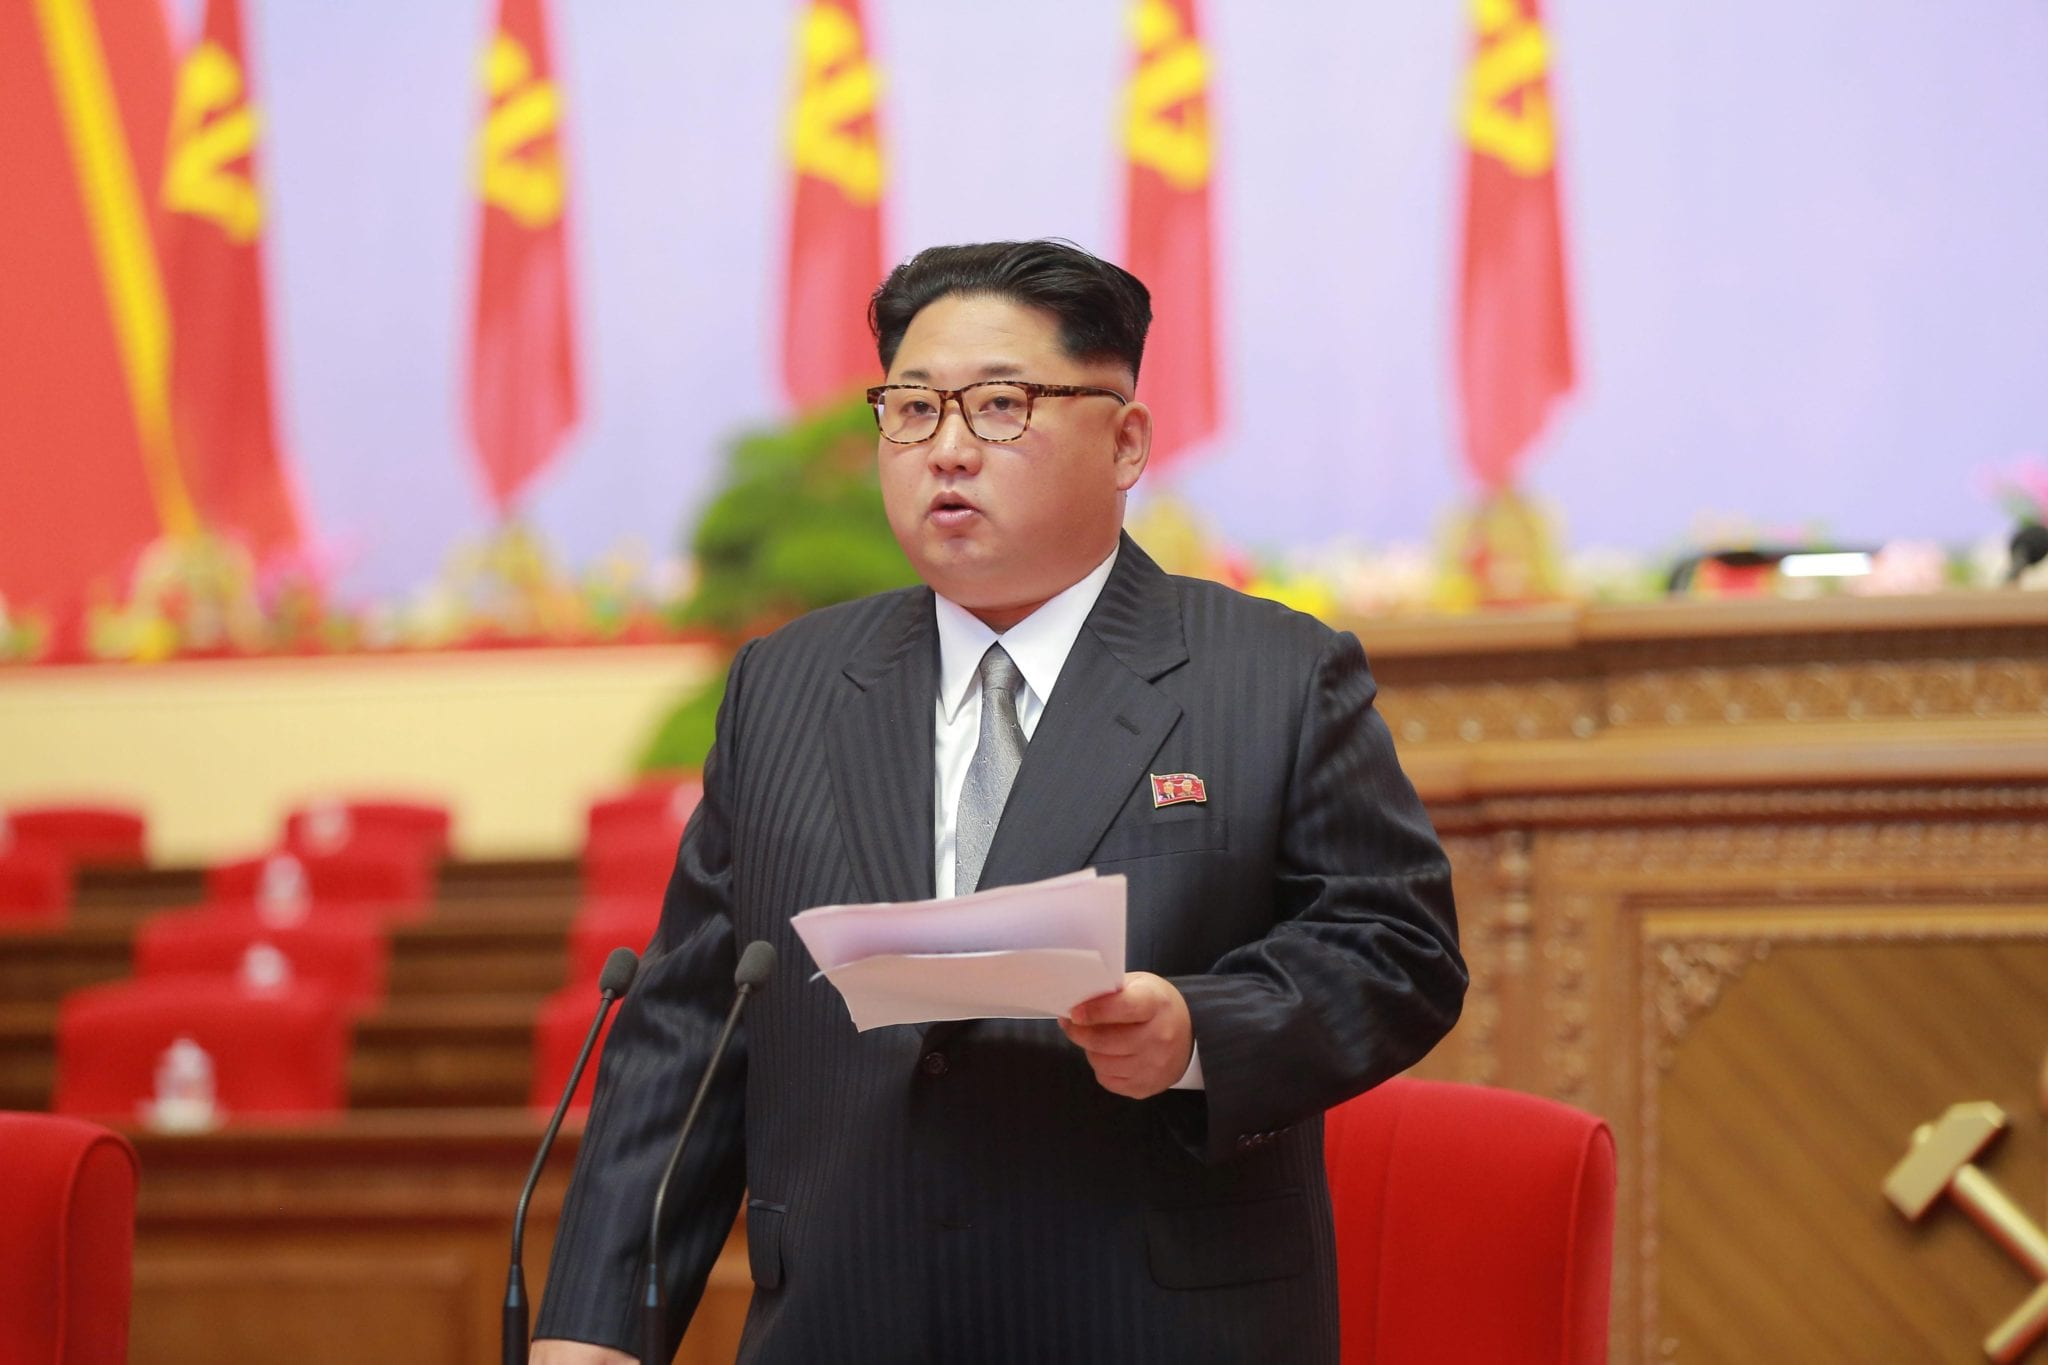 North Korean leader Kim Jong Un speaks during the first congress of the country's ruling Workers' Party in 36 years in Pyongyang